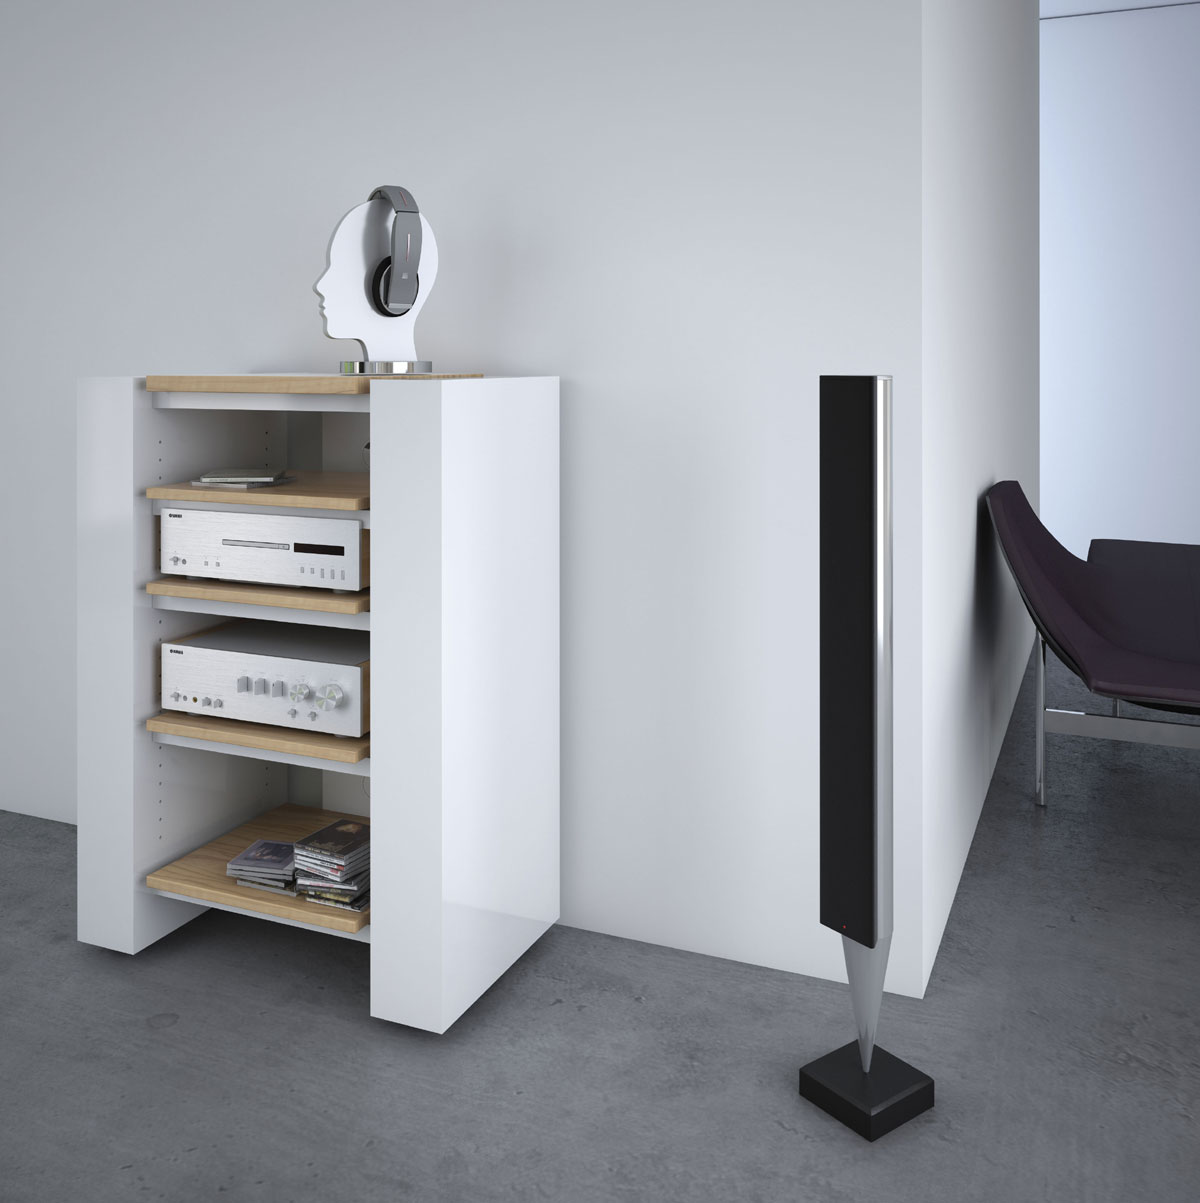 schnepel x linie x hifi rack bei hifi tv. Black Bedroom Furniture Sets. Home Design Ideas